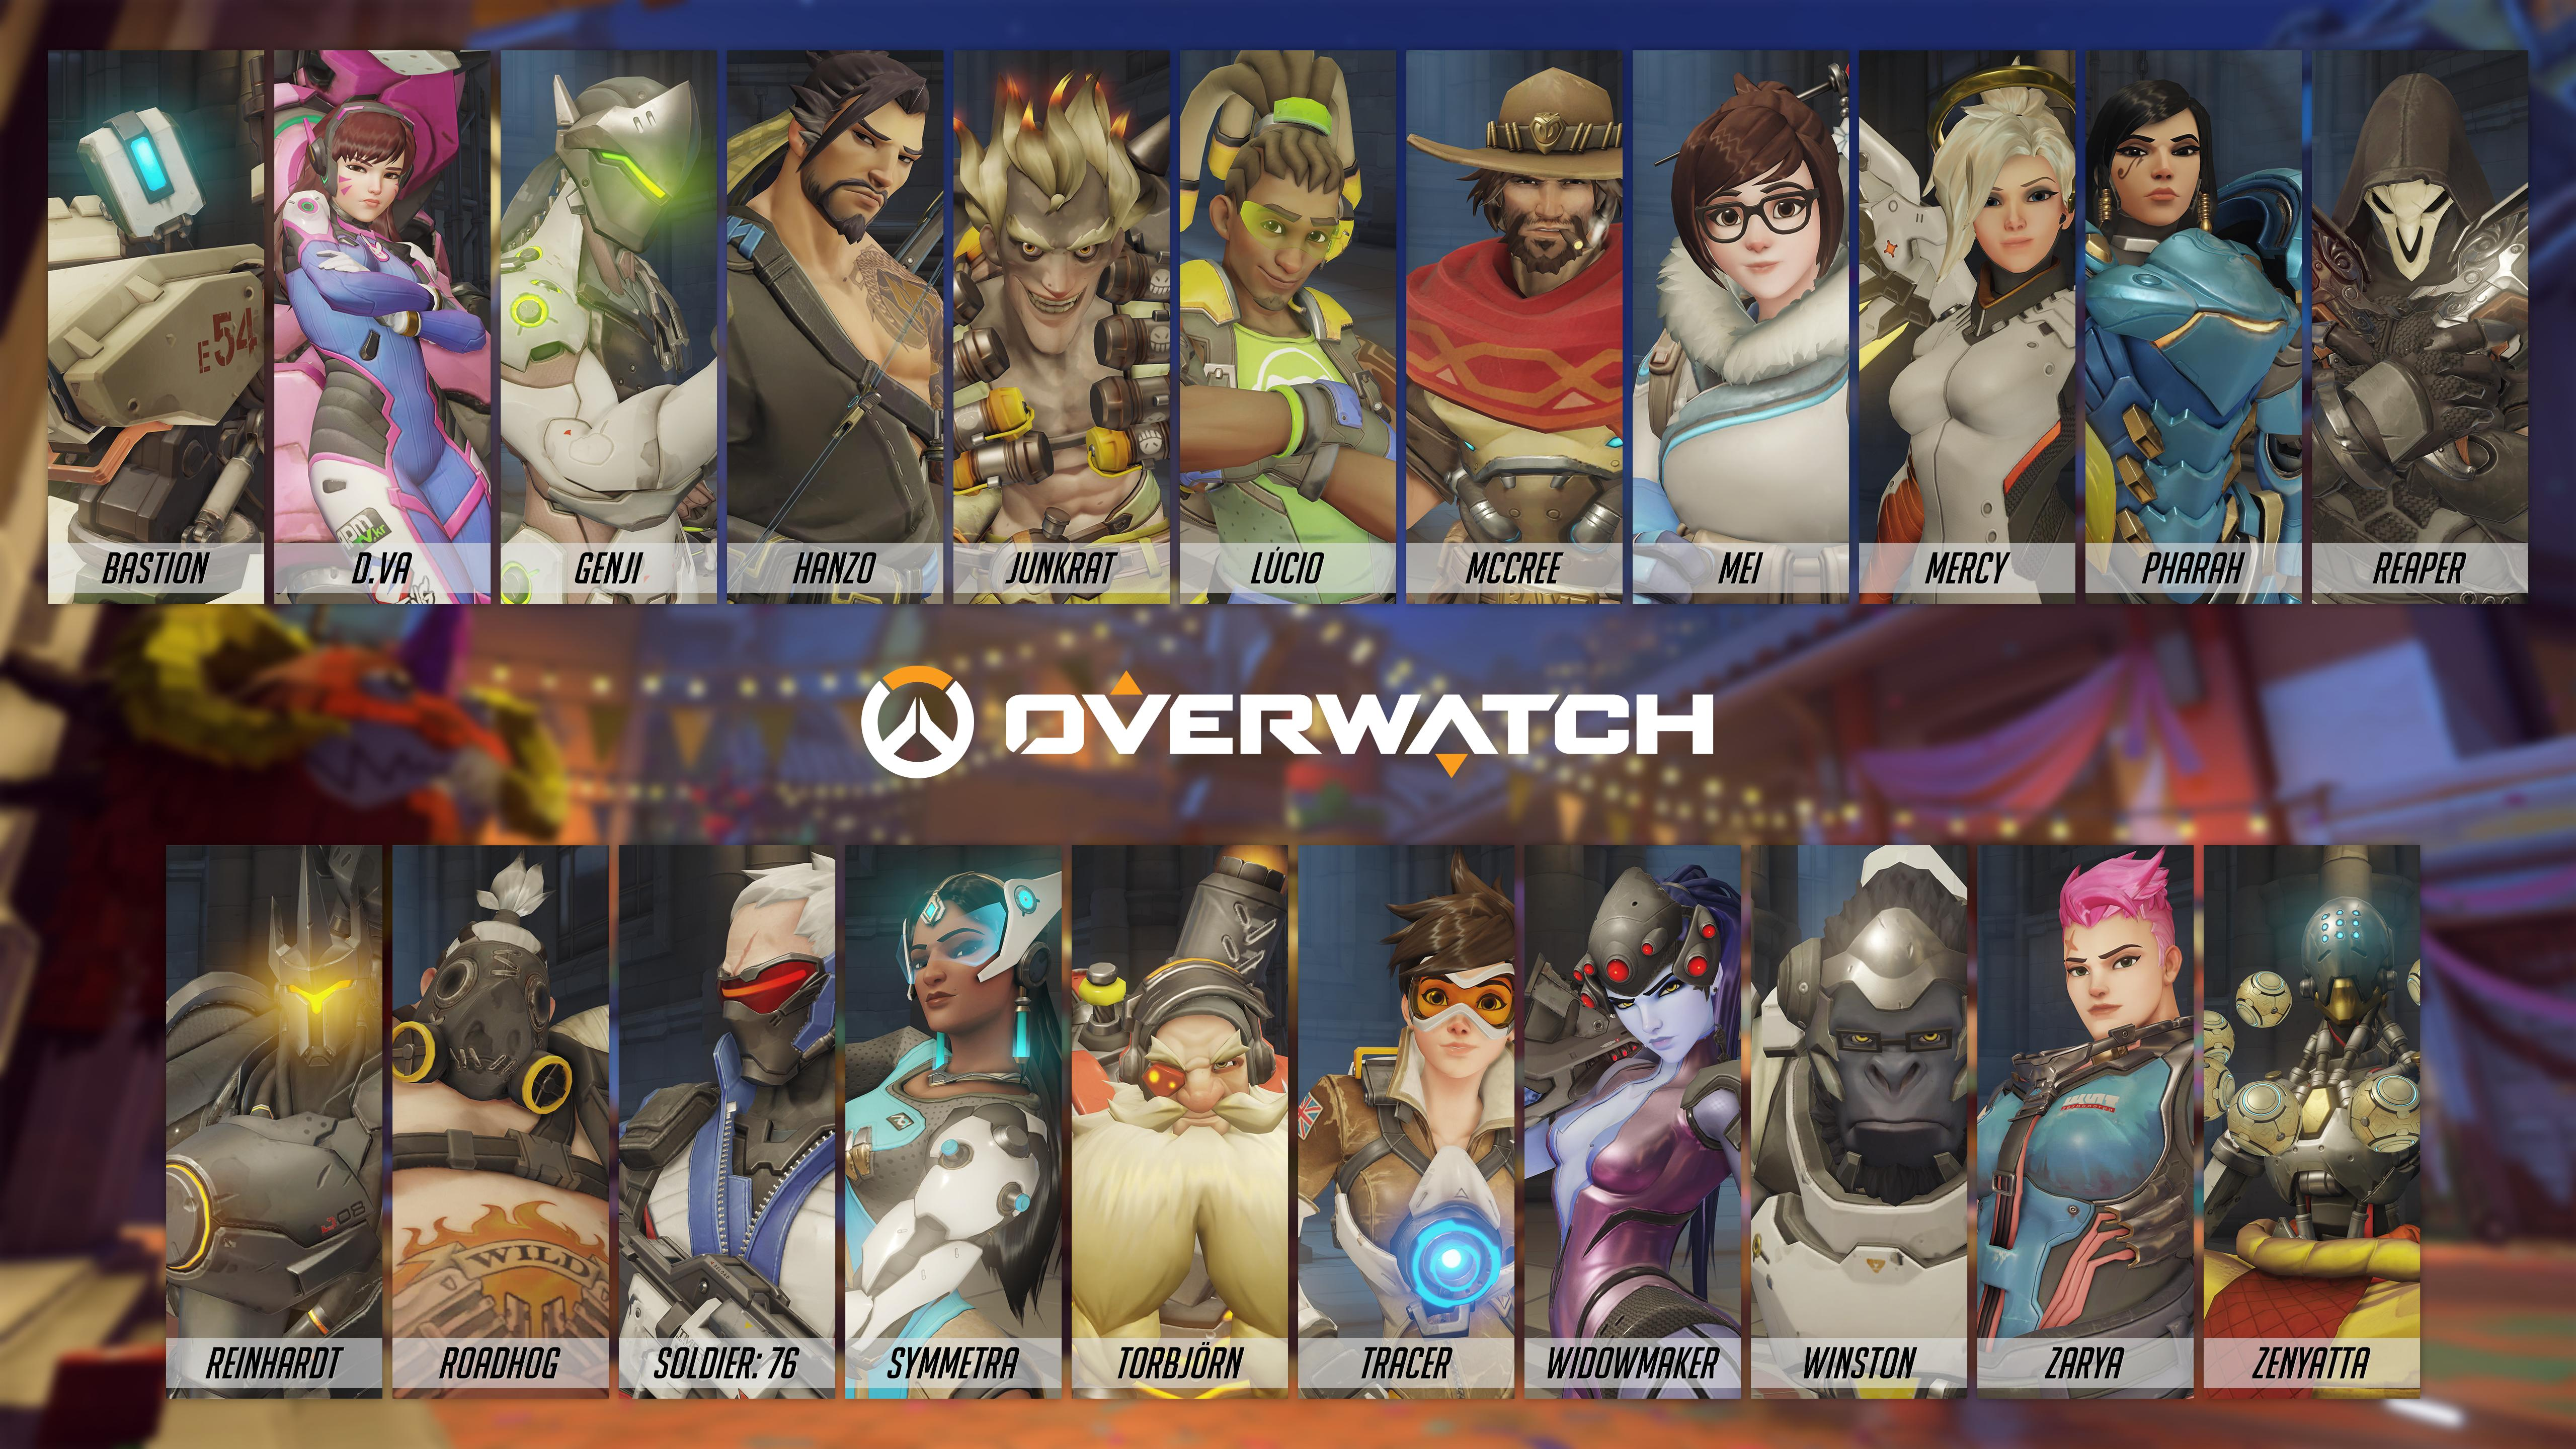 Hd Overwatch Wallpapers Posted By Christopher Johnson